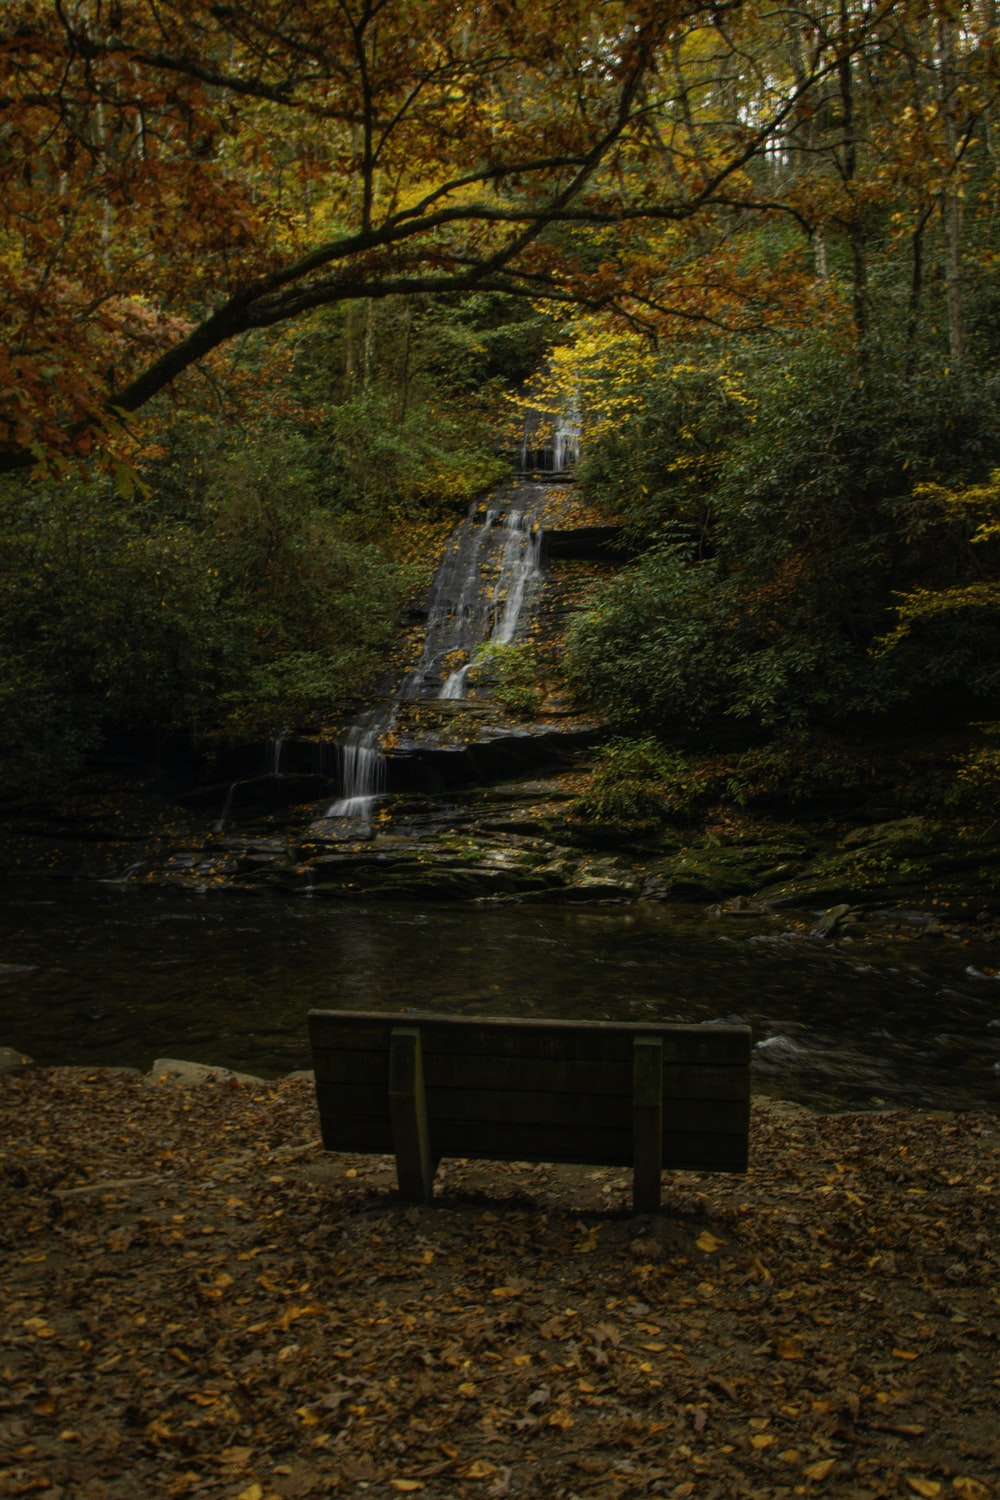 brown wooden bench near water falls during daytime